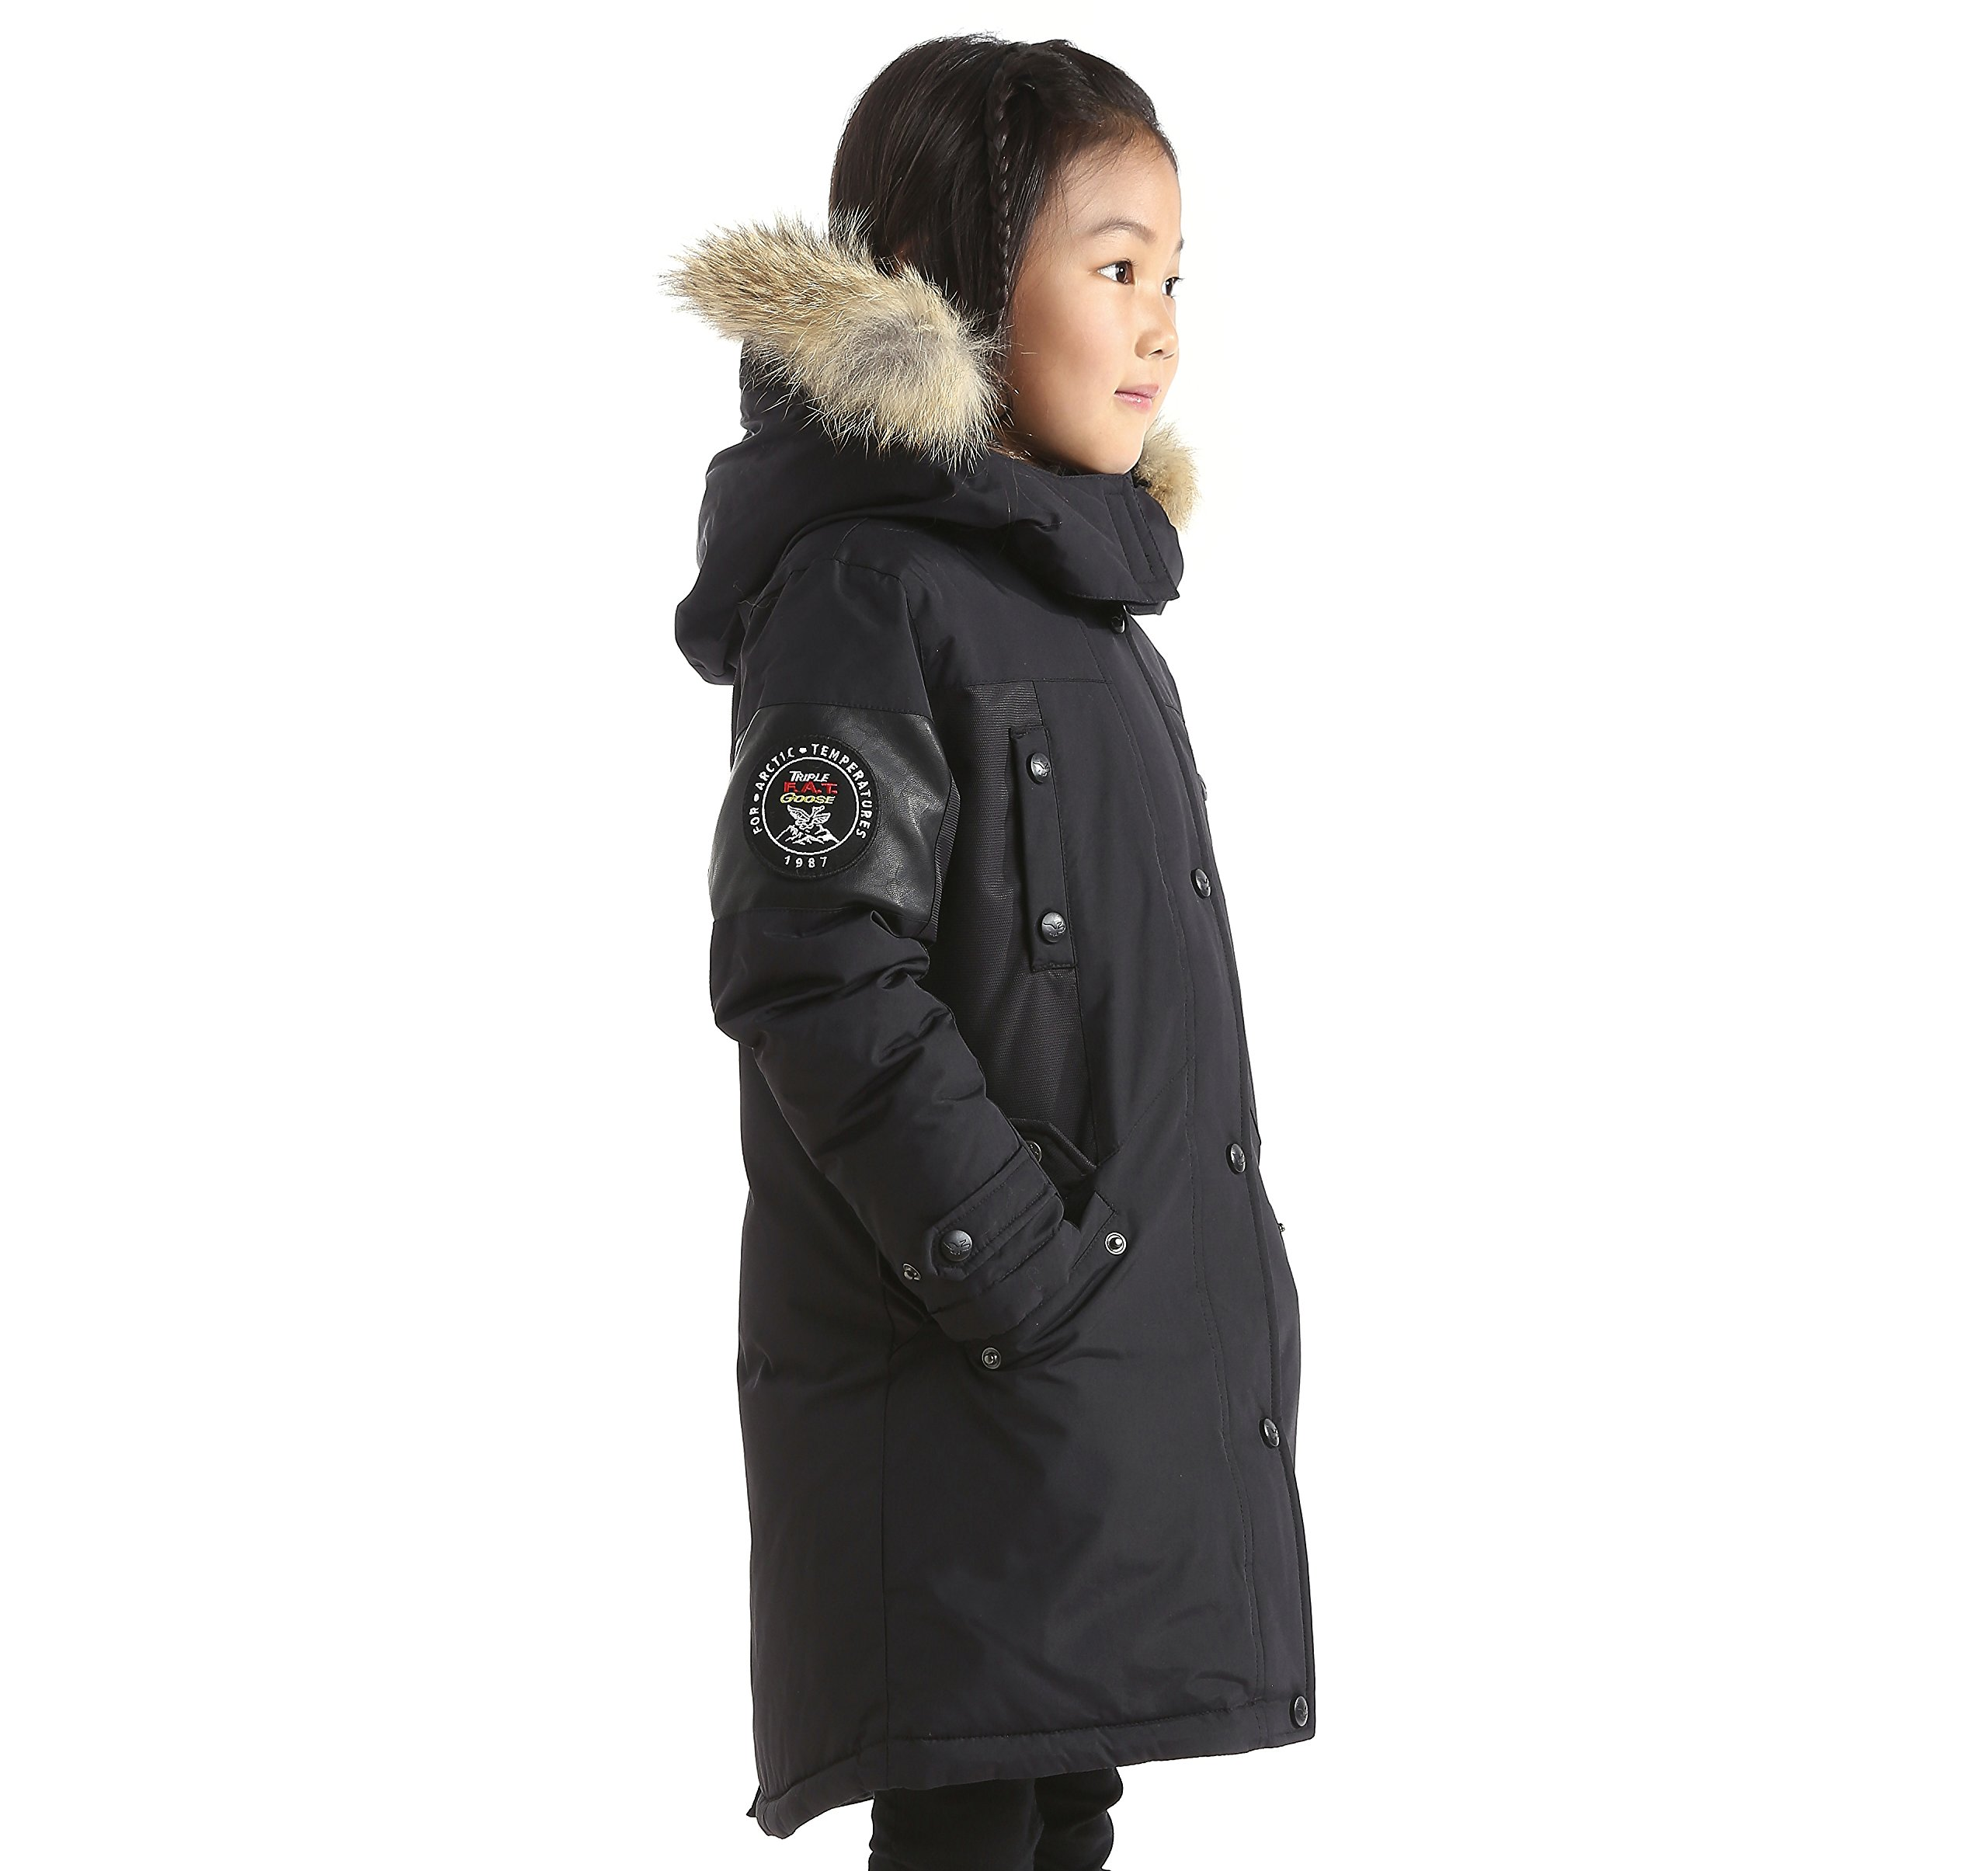 Triple F.A.T. Goose Embree Girls Down Jacket Parka with Real Coyote Fur (10, Black) by Triple F.A.T. Goose (Image #4)